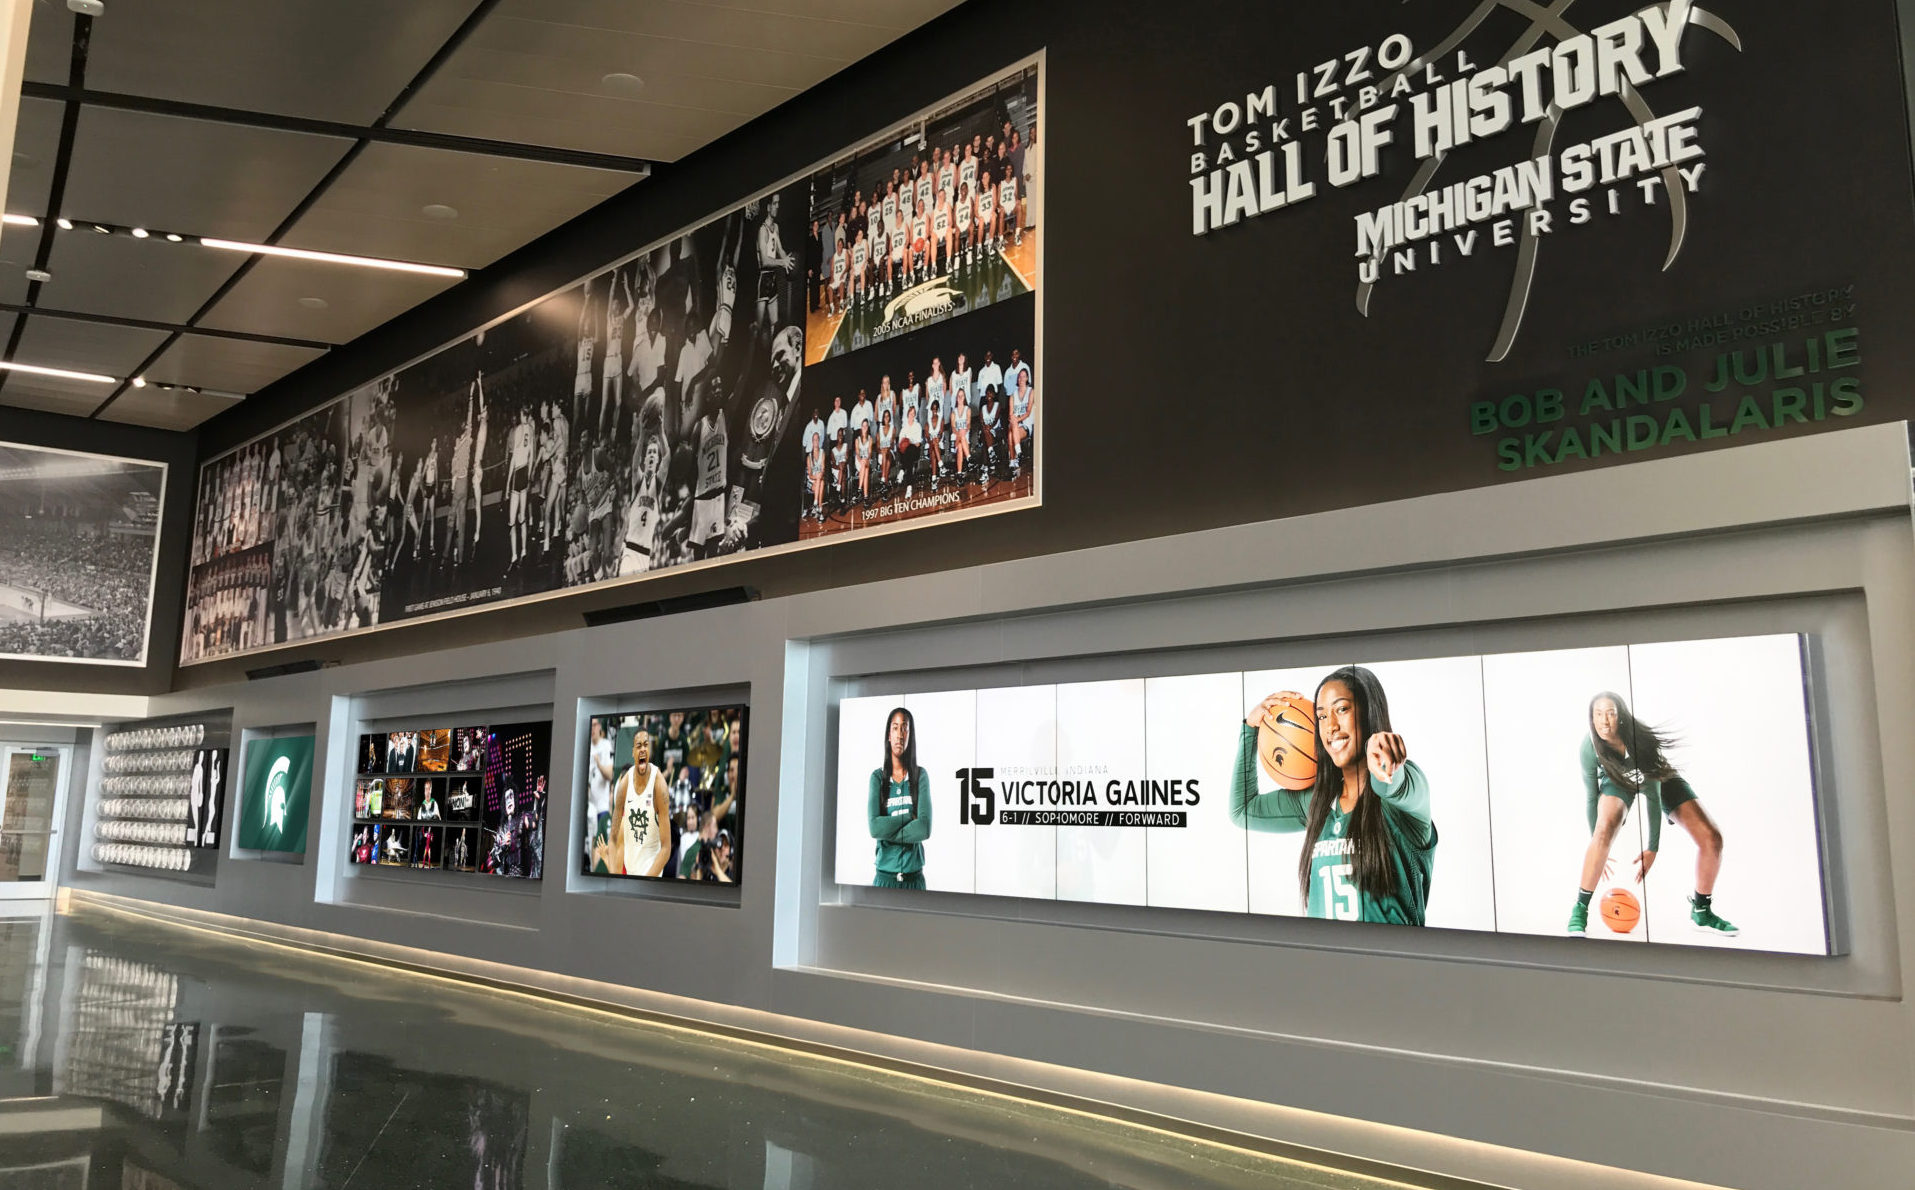 Hall of History, College, Michigan State University, Spartan, Basketball, MSU, AJP, Anthony James Partners, Big 10 Conference, LED videoboard, LED video display, LED display